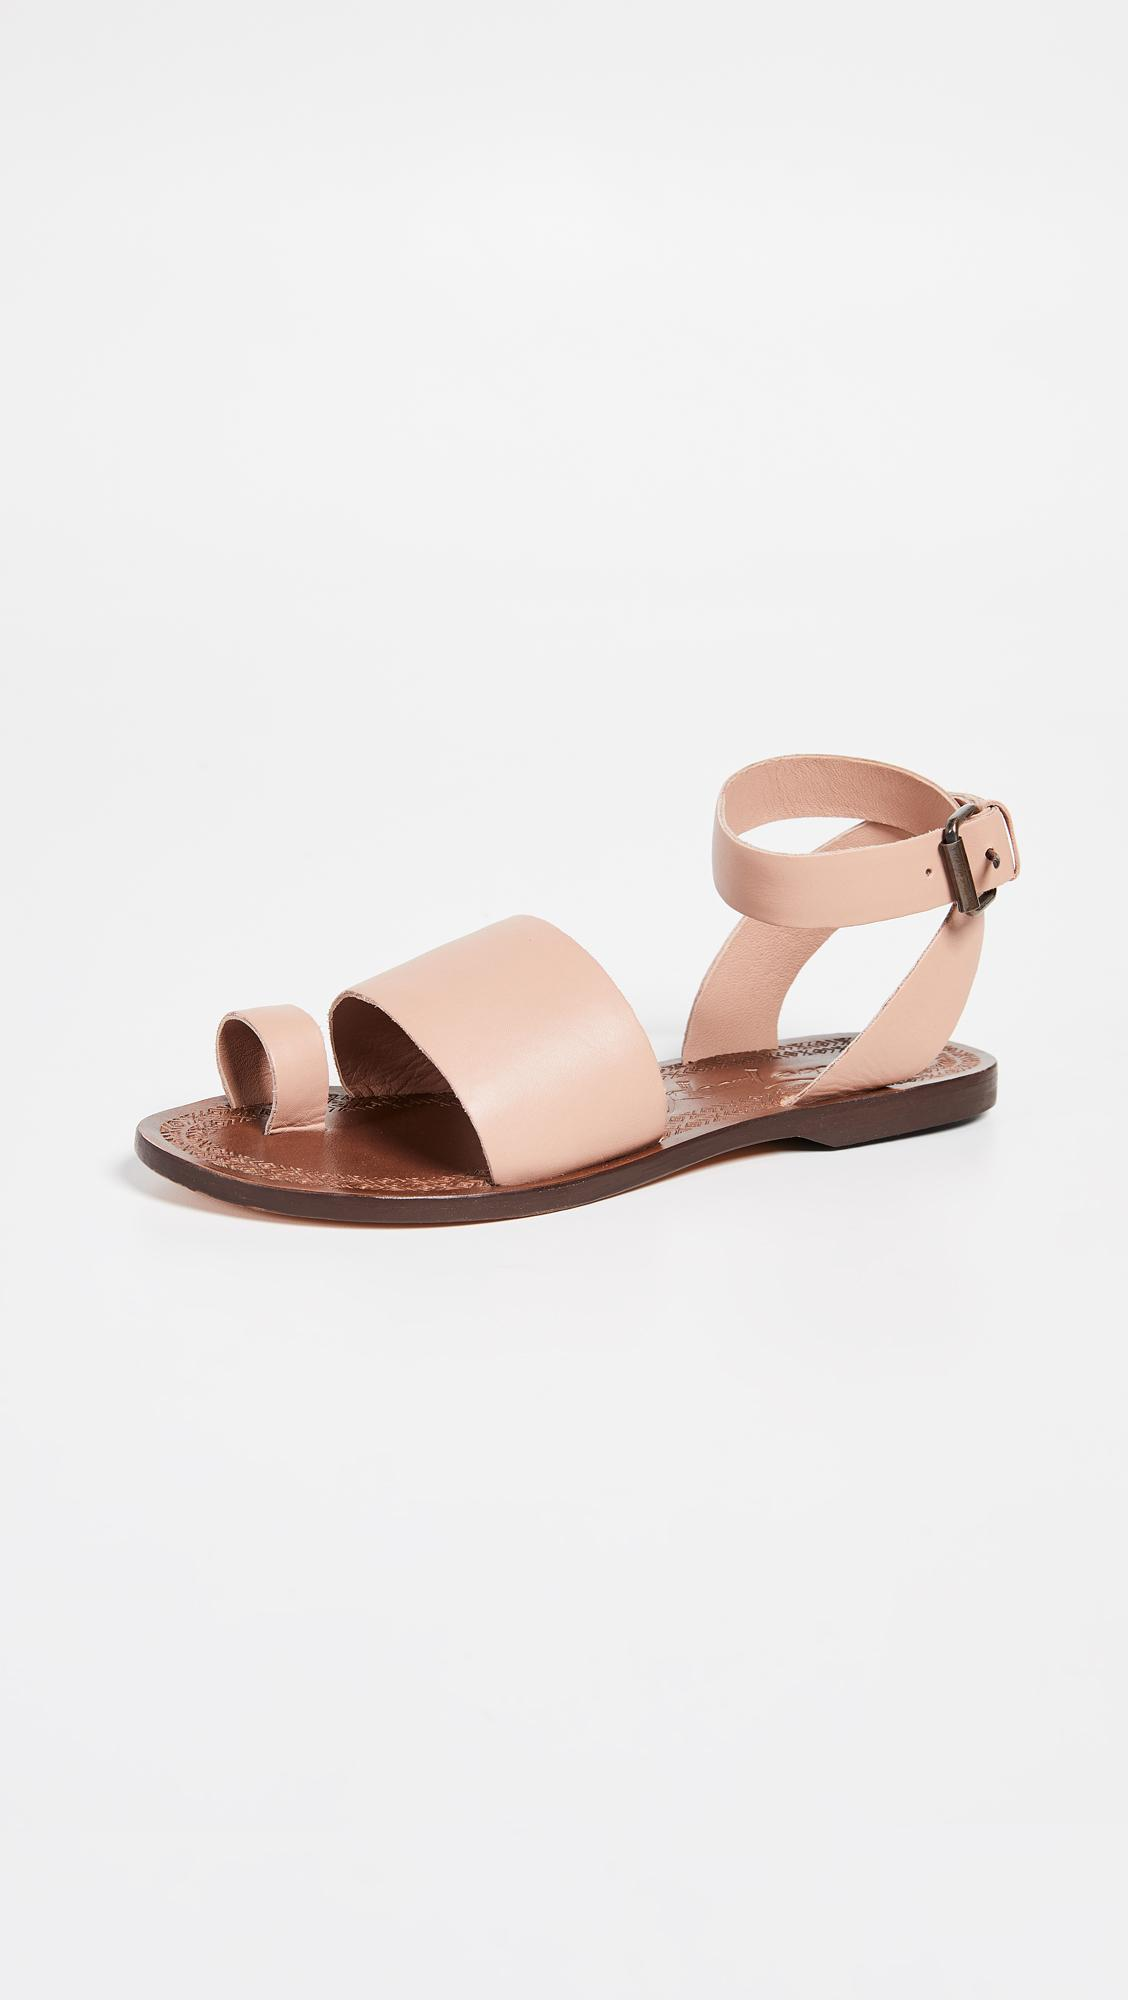 778e40d2b37 Free People. Women s Torrence Flat Sandals